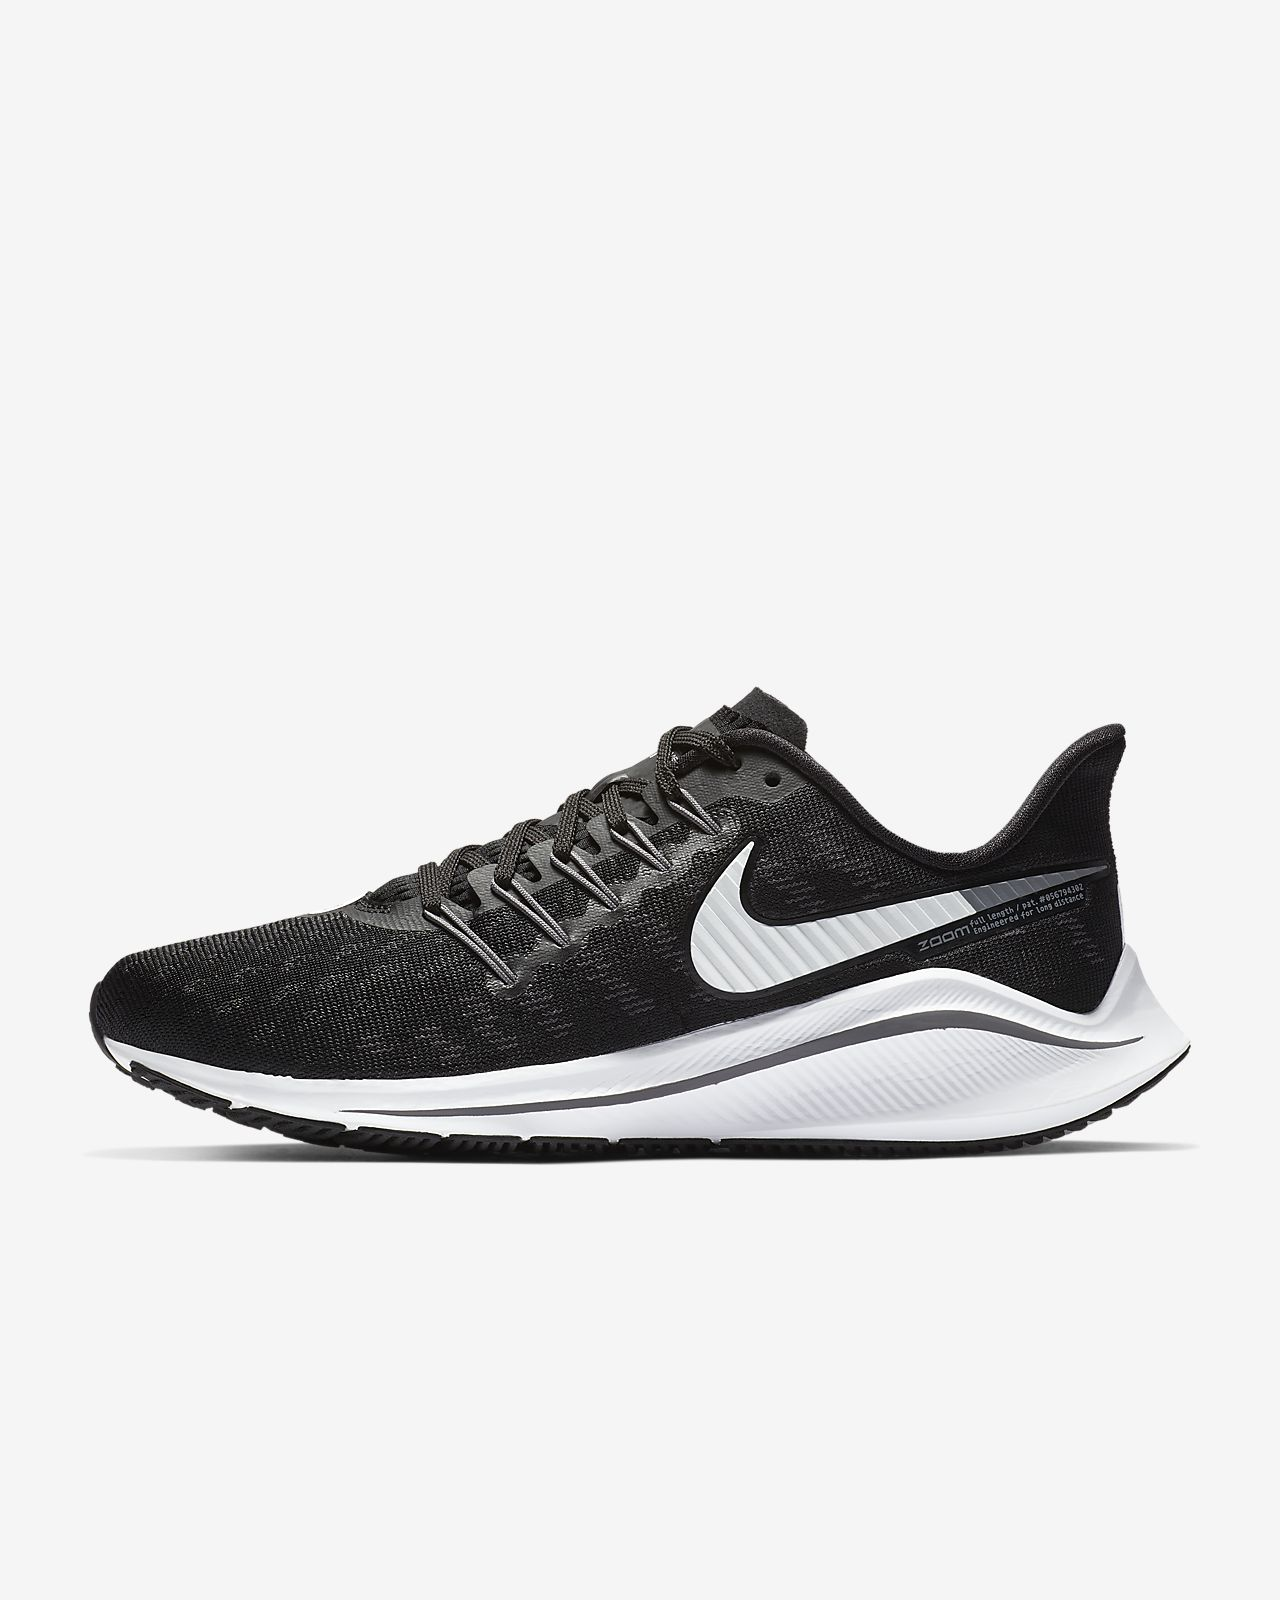 Nike Air Zoom Vomero 14 Women's Running Shoe